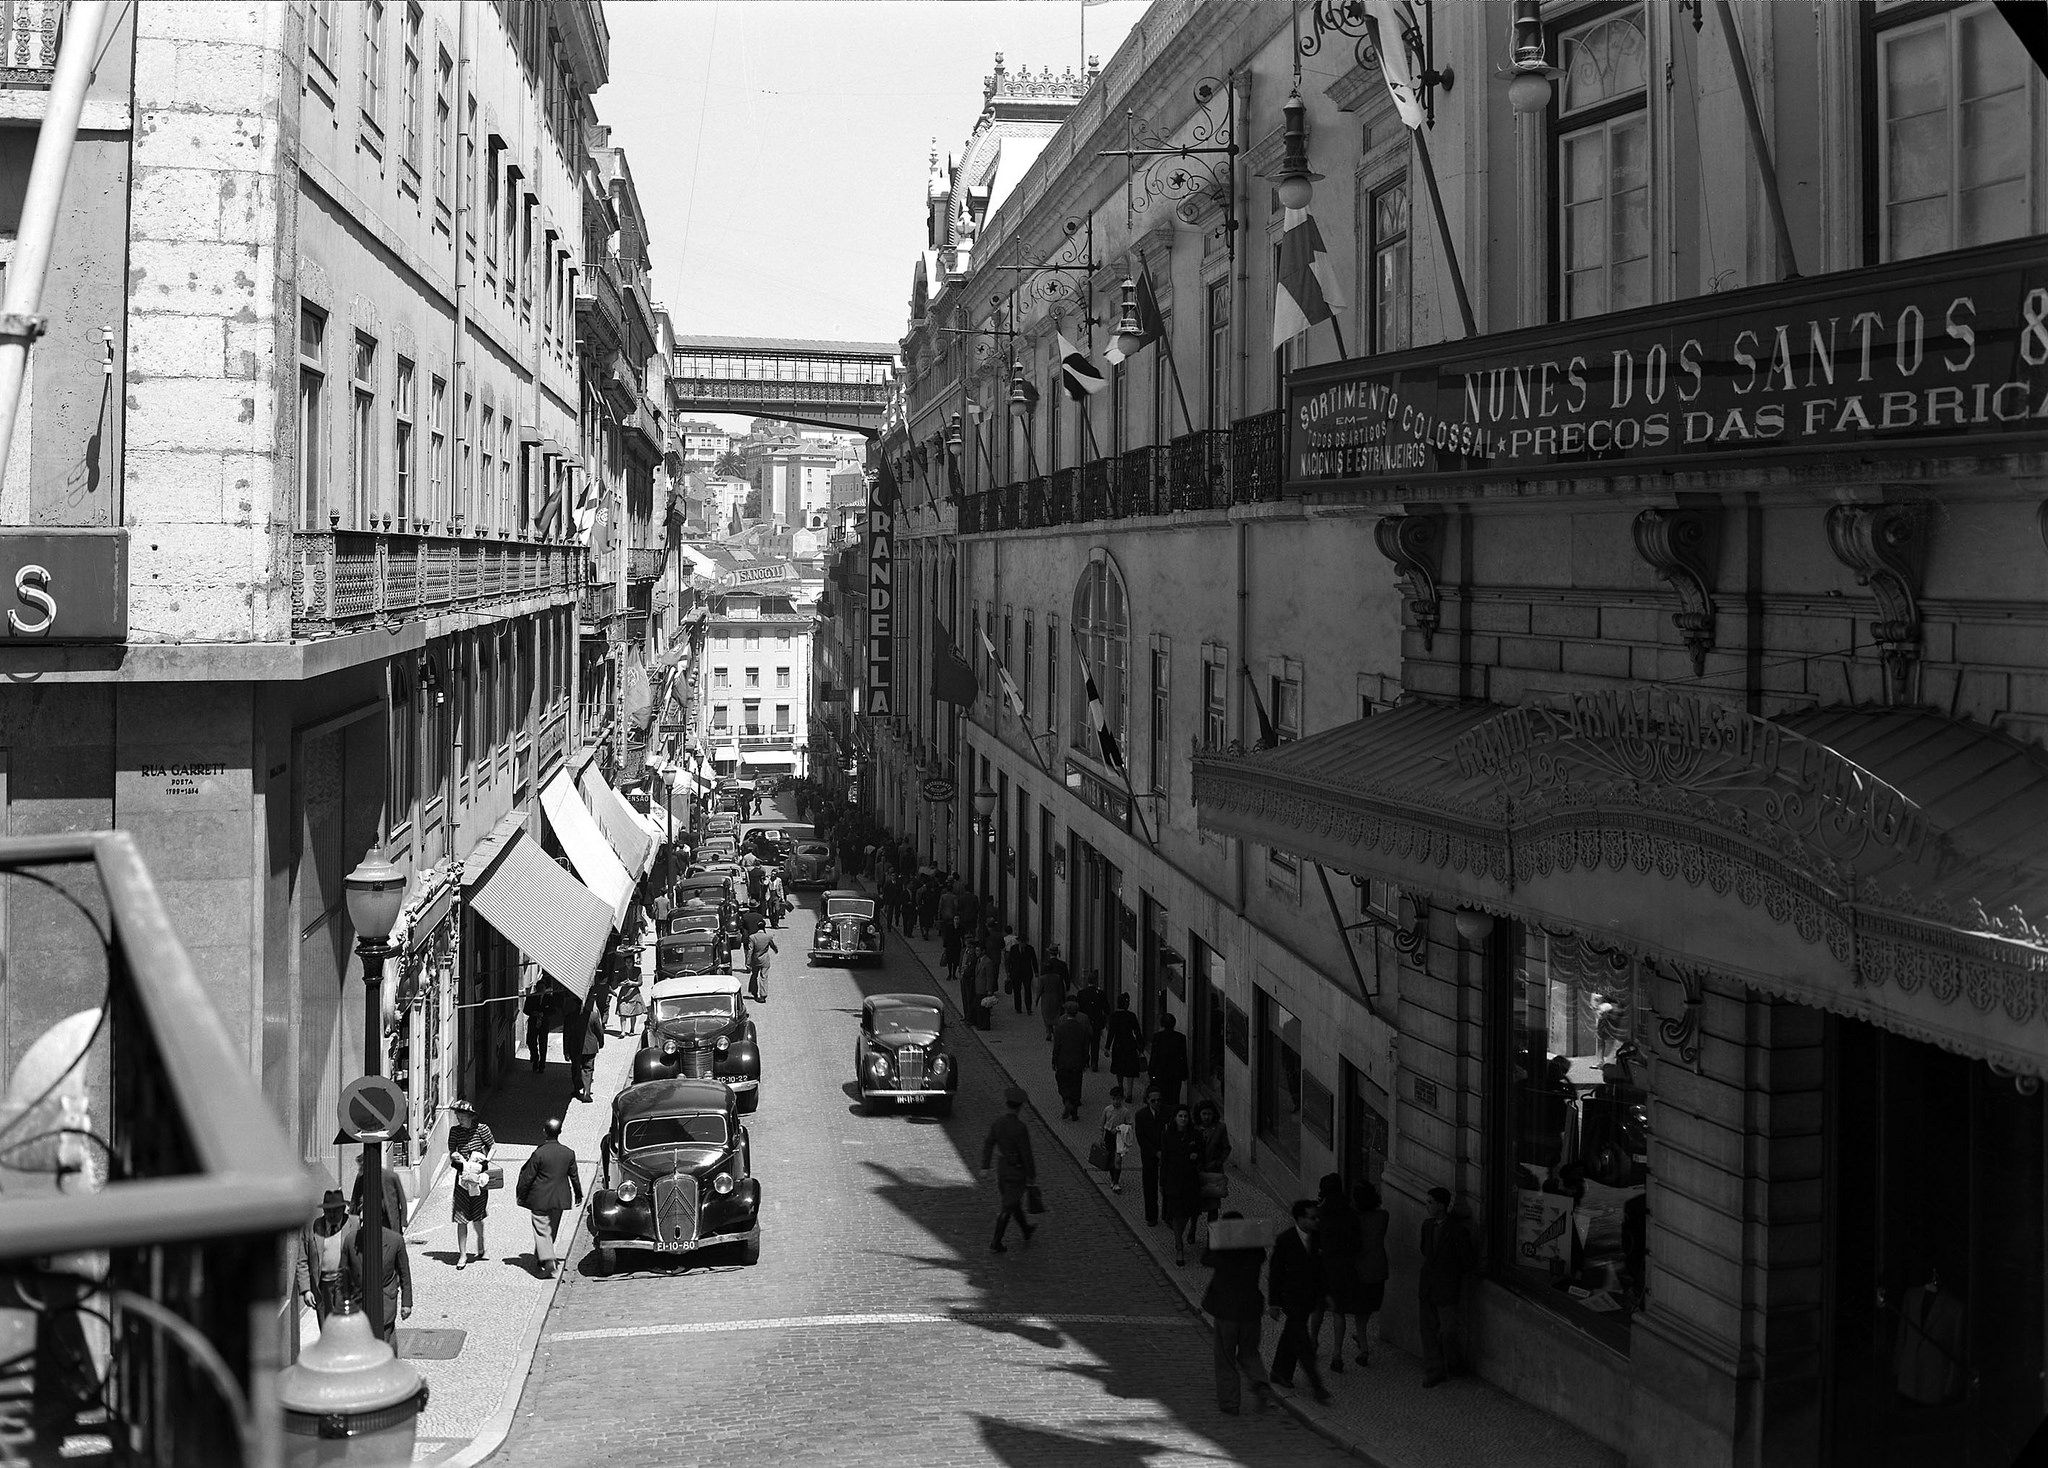 https://flic.kr/p/o3igpb | Rua do Carmo, Lisboa, Portugal | Vista de rua. Fotografia sem data. Produzida durante a atividade do Estúdio Horácio Novais: 1930-1980.  [CFT164.161399.ic]